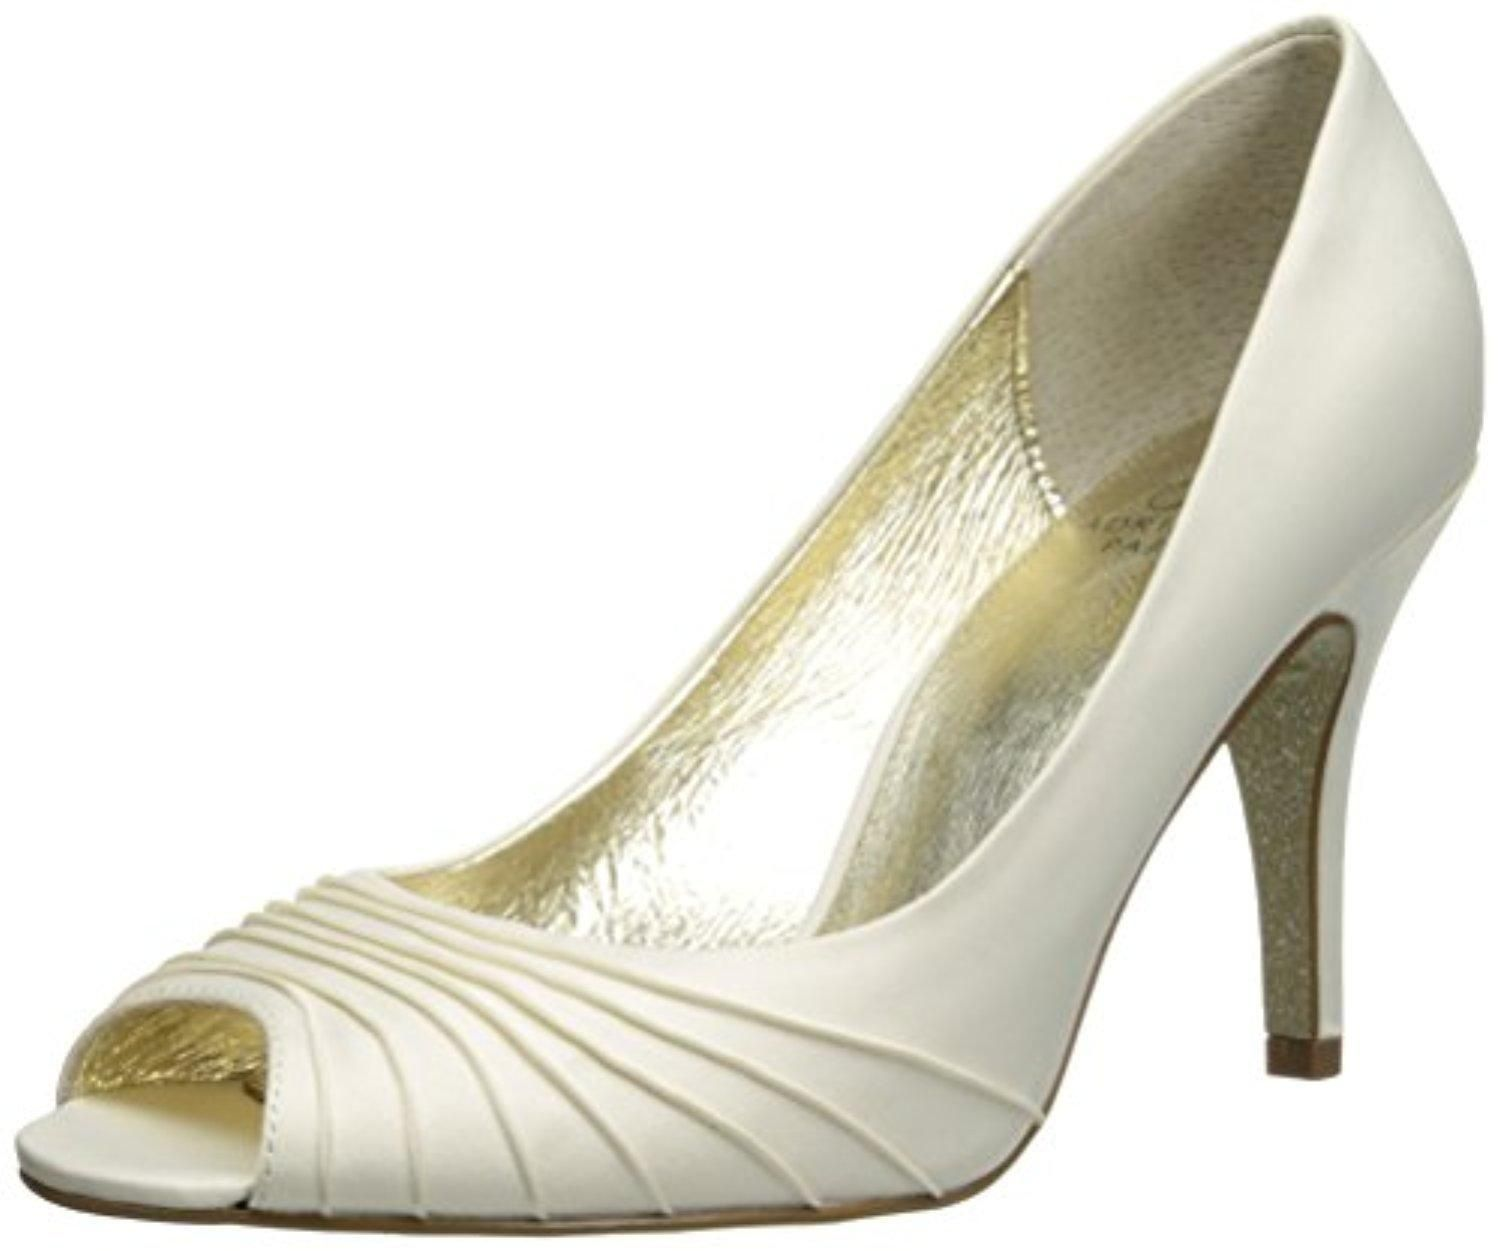 Adrianna Papell Women's Farrel Dress Pump, Ivory Satin, 8.5 M US - Brought  to